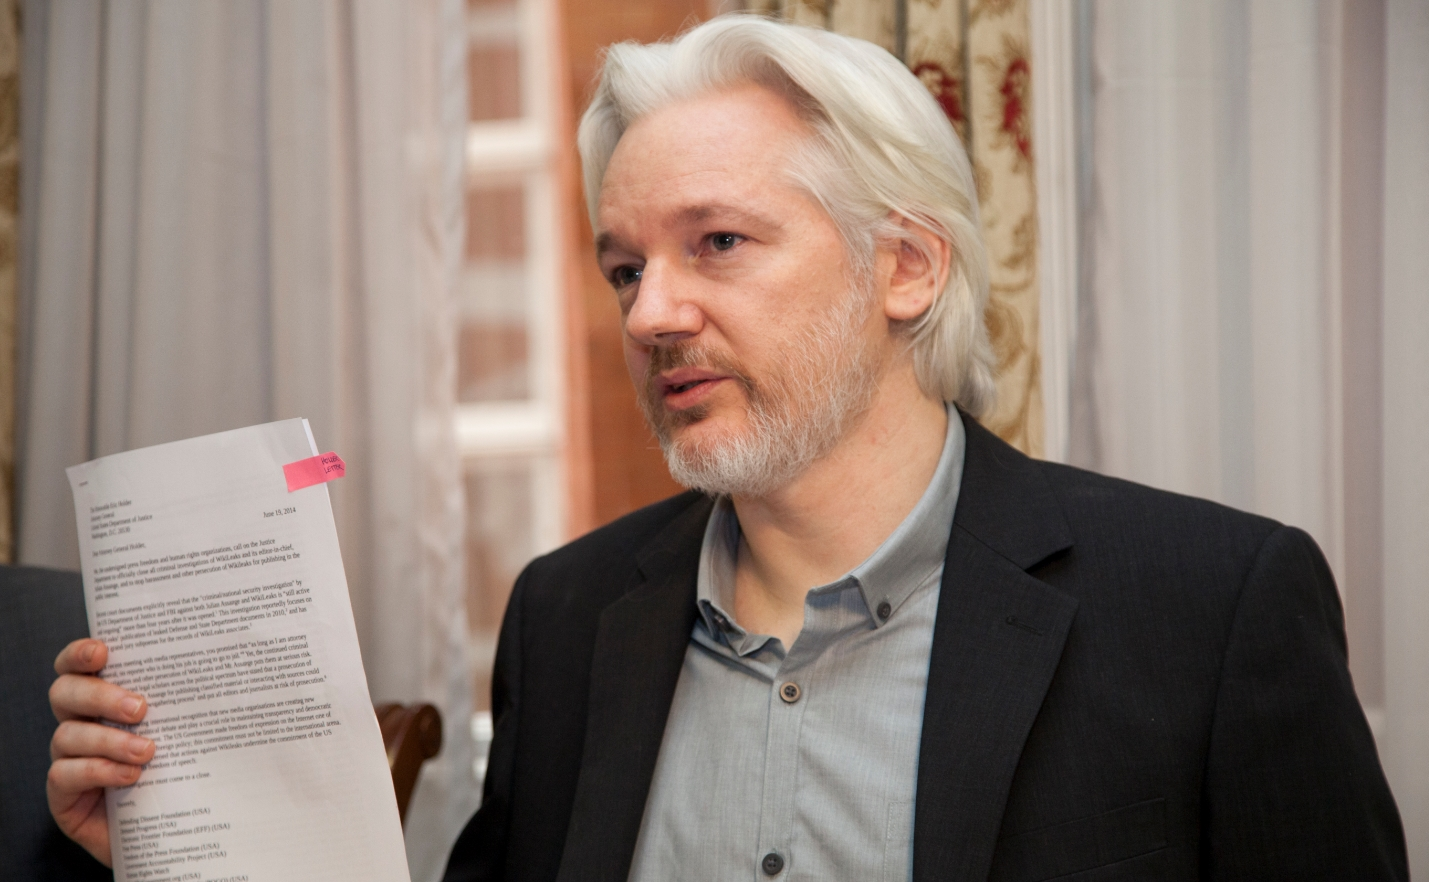 Image: How many times must Assange be proven right before people start listening?